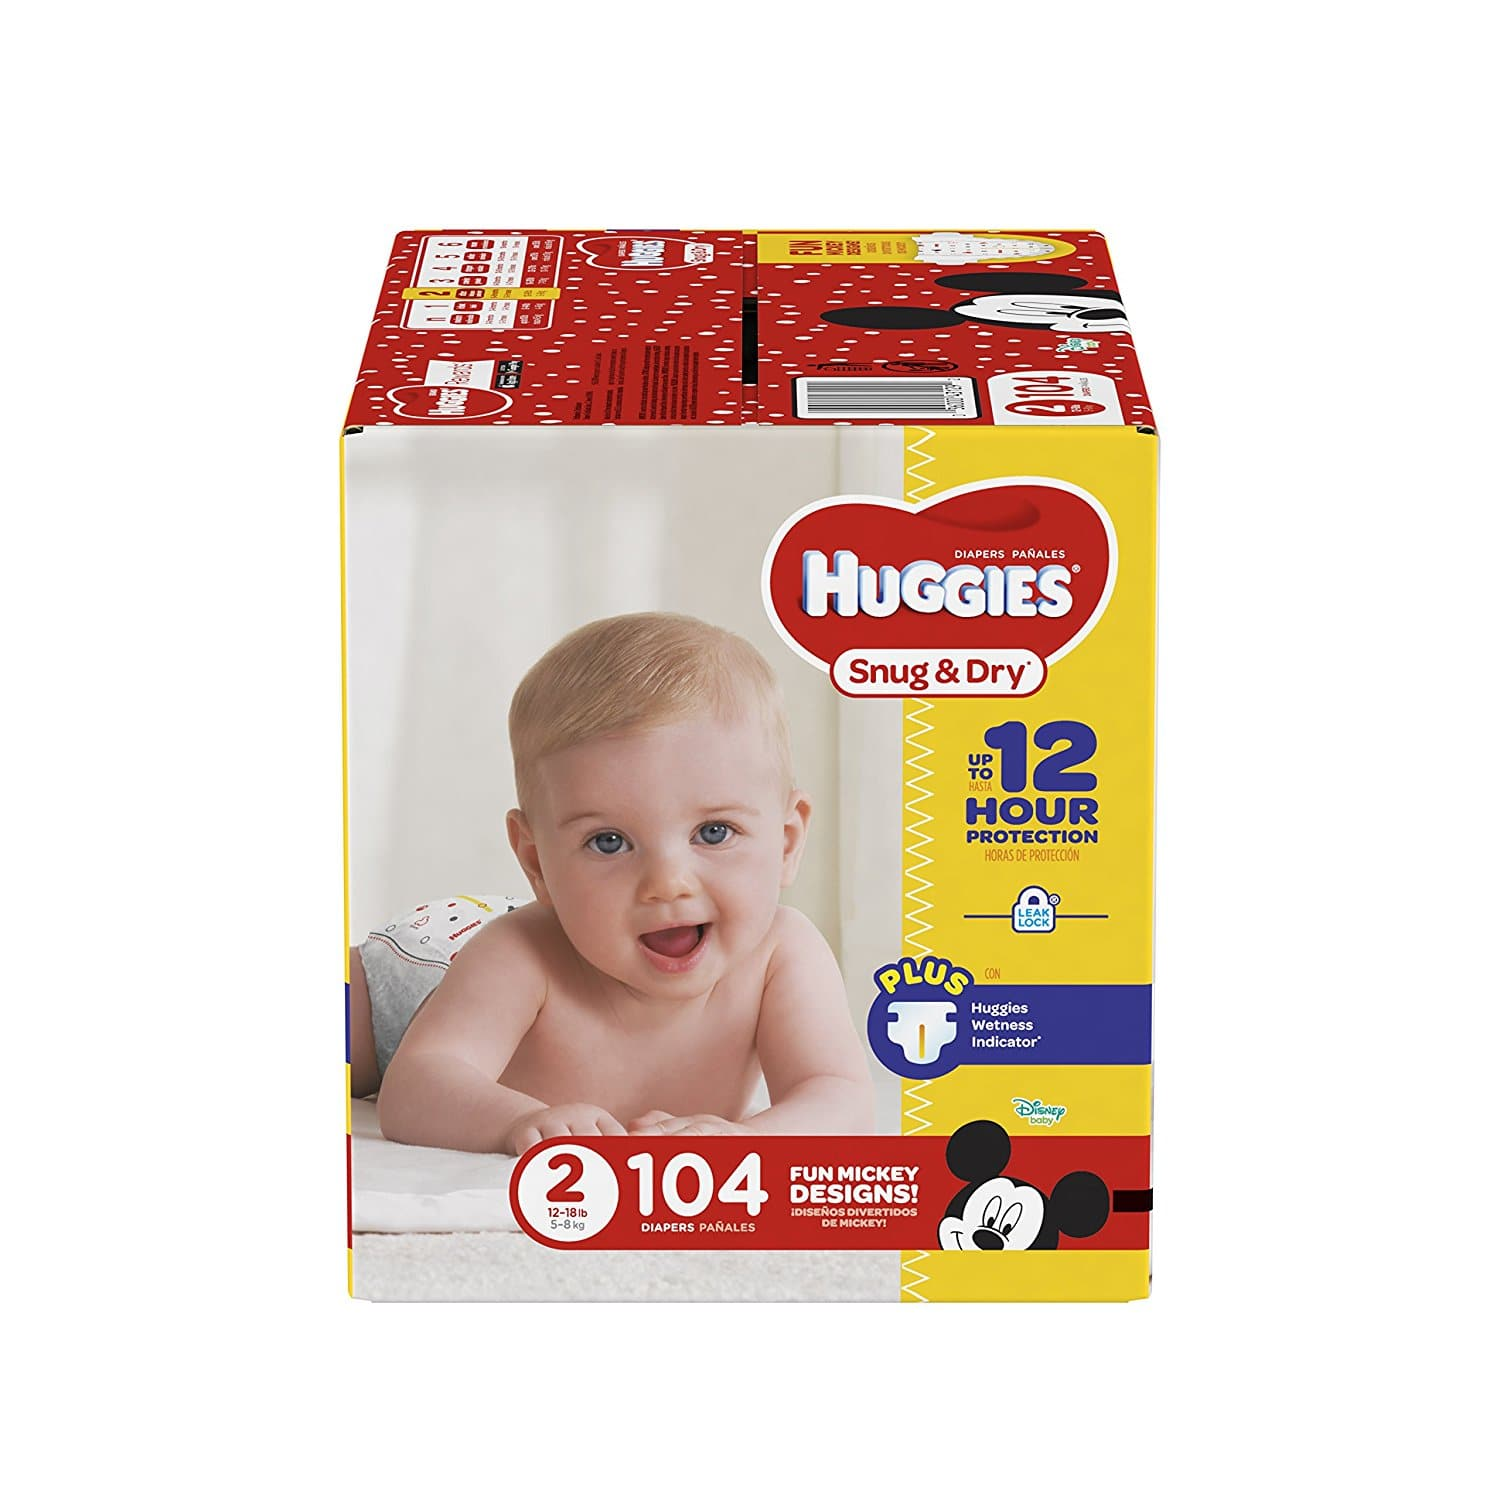 HUGGIES Snug & Dry Diapers, Size 1, 112 Count, BIG PACK, $15.51, as low as $12.41 w/max SS.